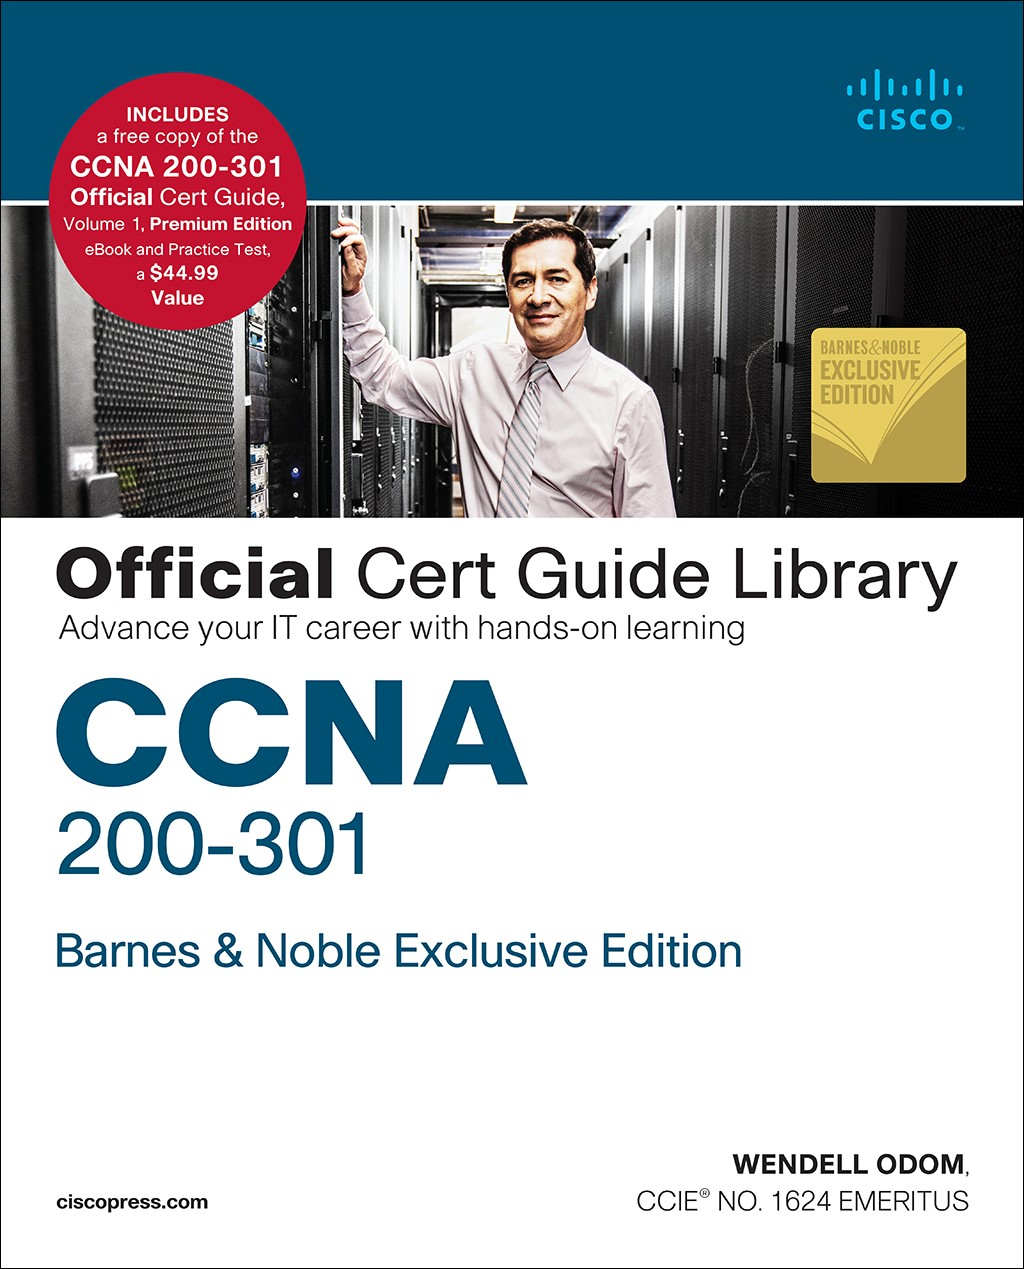 CCNA 200-301 Official Cert Guide Library, B&N Exclusive Edition